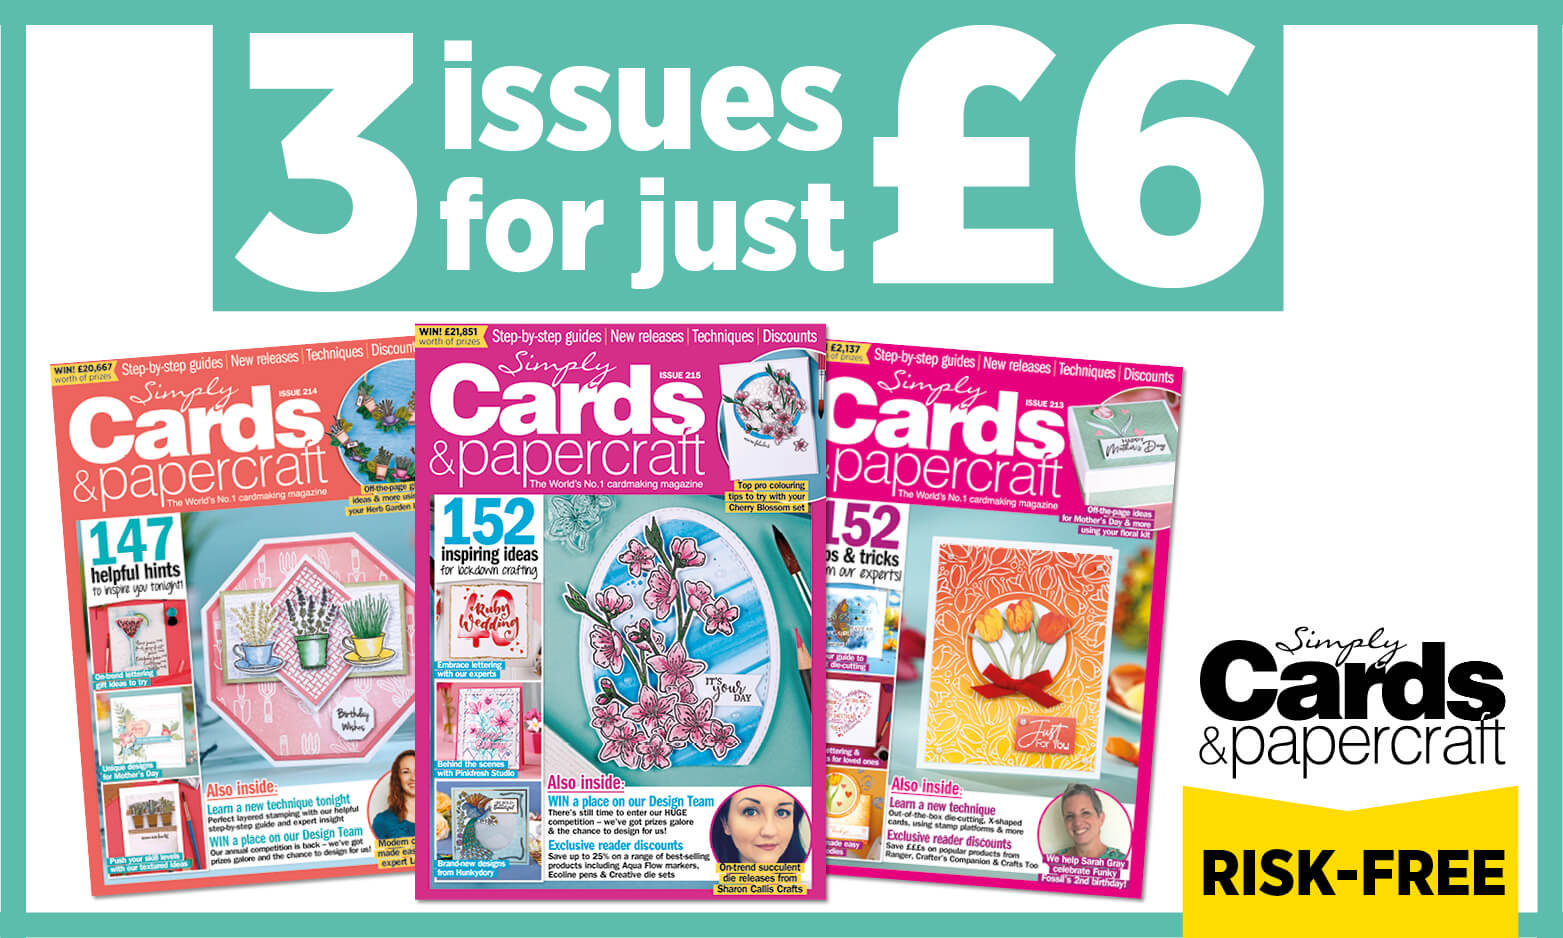 Simply Cards & Papercraft trial subscription offer 3 issues for £6